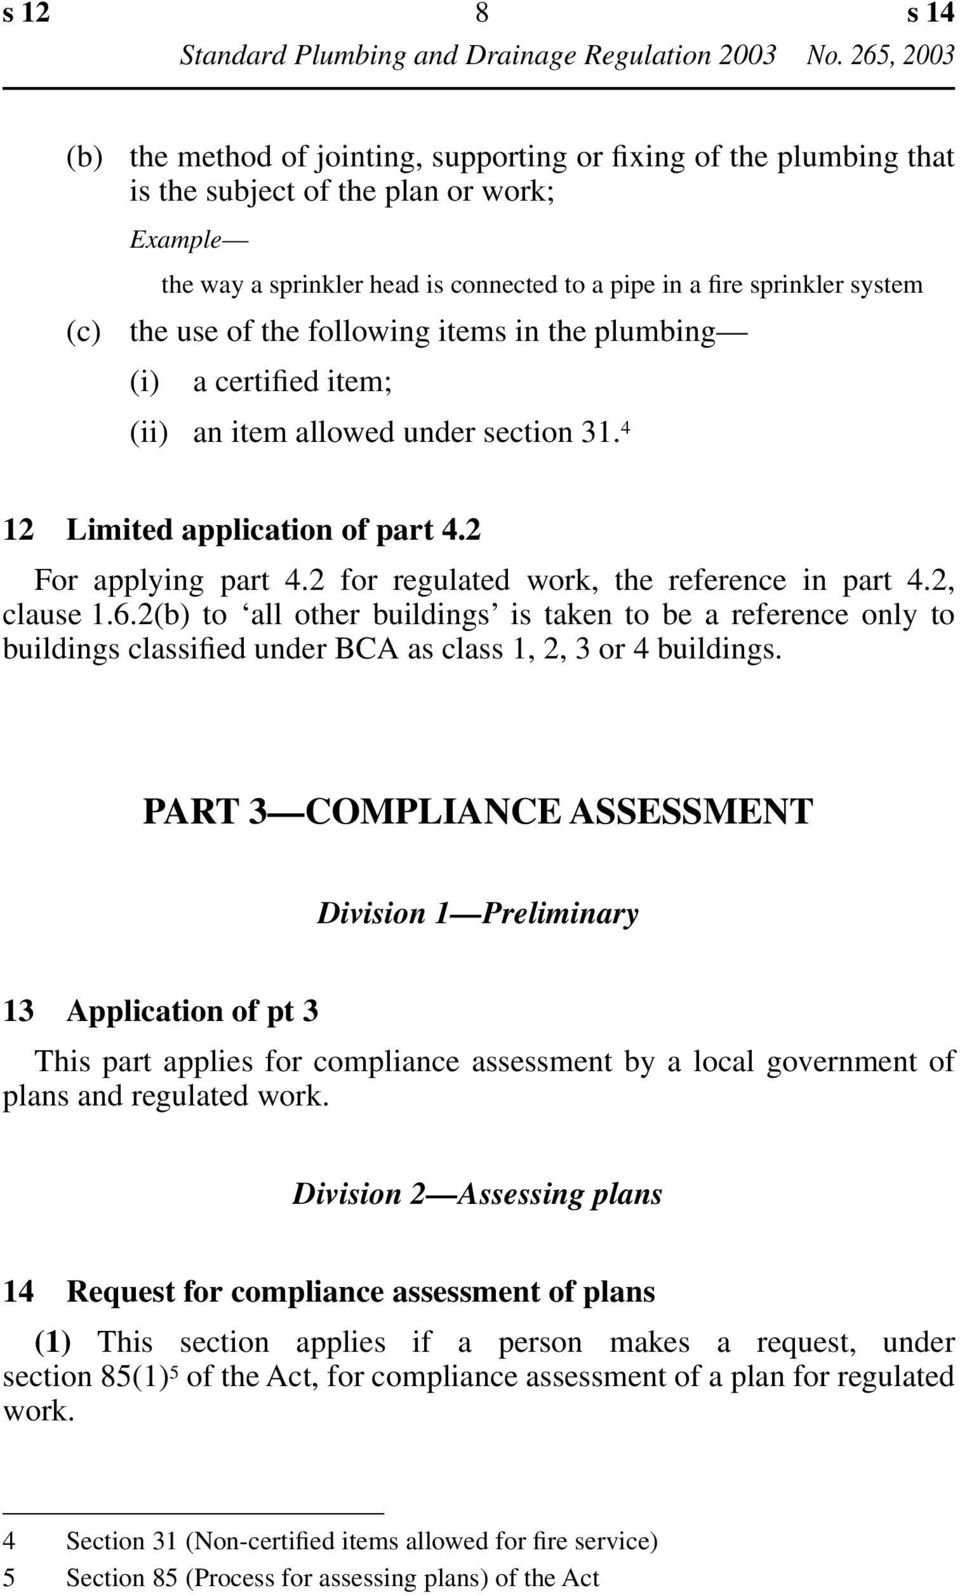 2 for regulated work, the reference in part 4.2, clause 1.6.2(b) to all other buildings is taken to be a reference only to buildings classified under BCA as class 1, 2, 3 or 4 buildings.